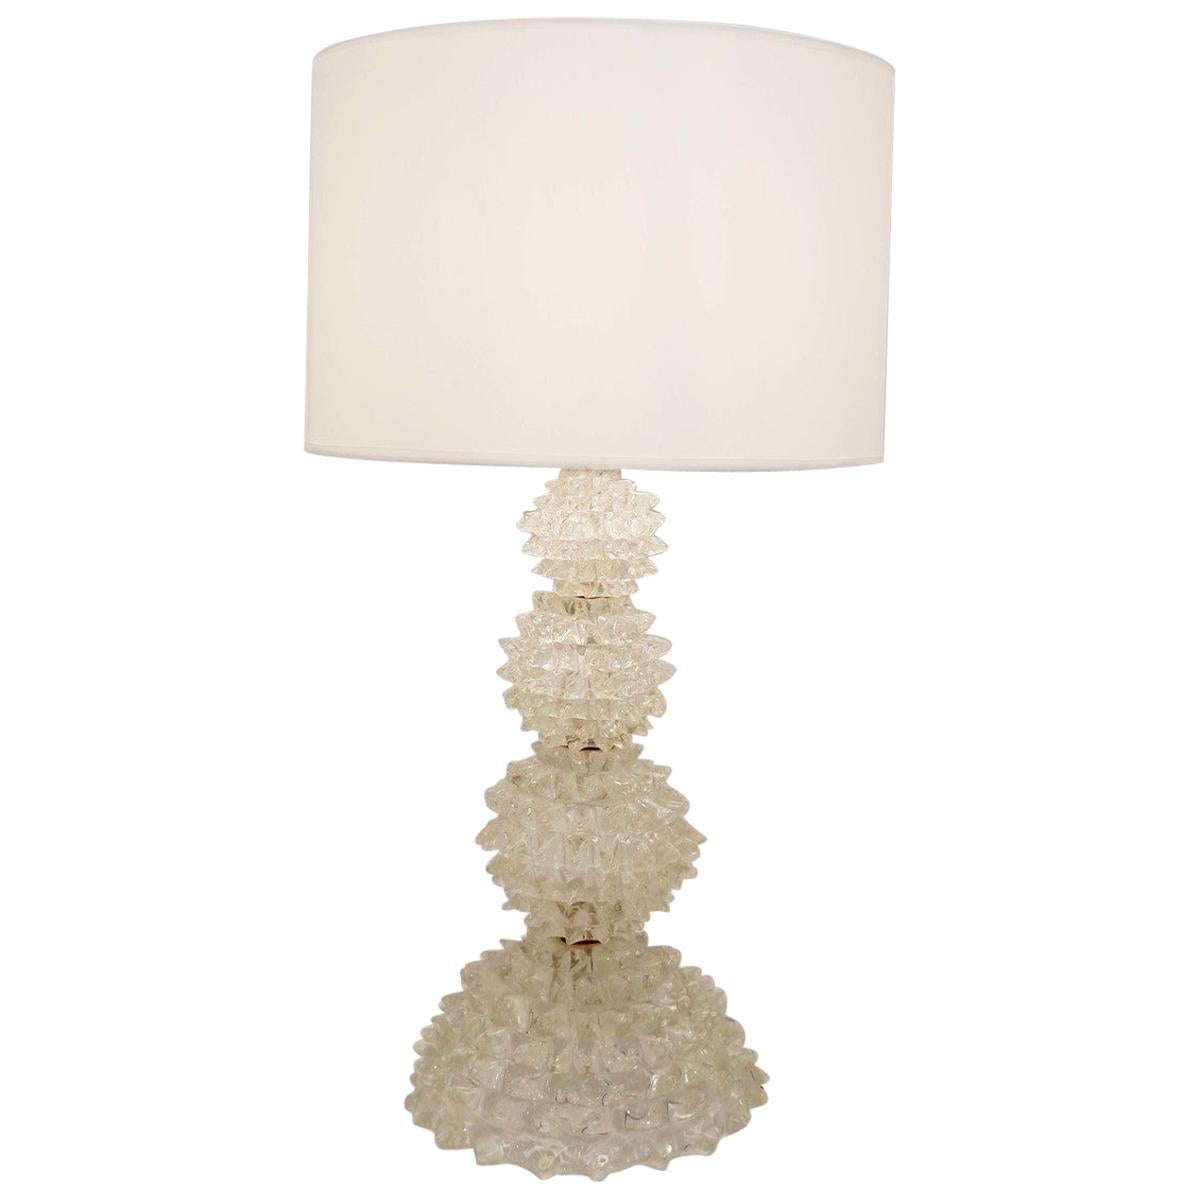 Rostrato Glass Table Lamp from Barovier & Toso, 1940s